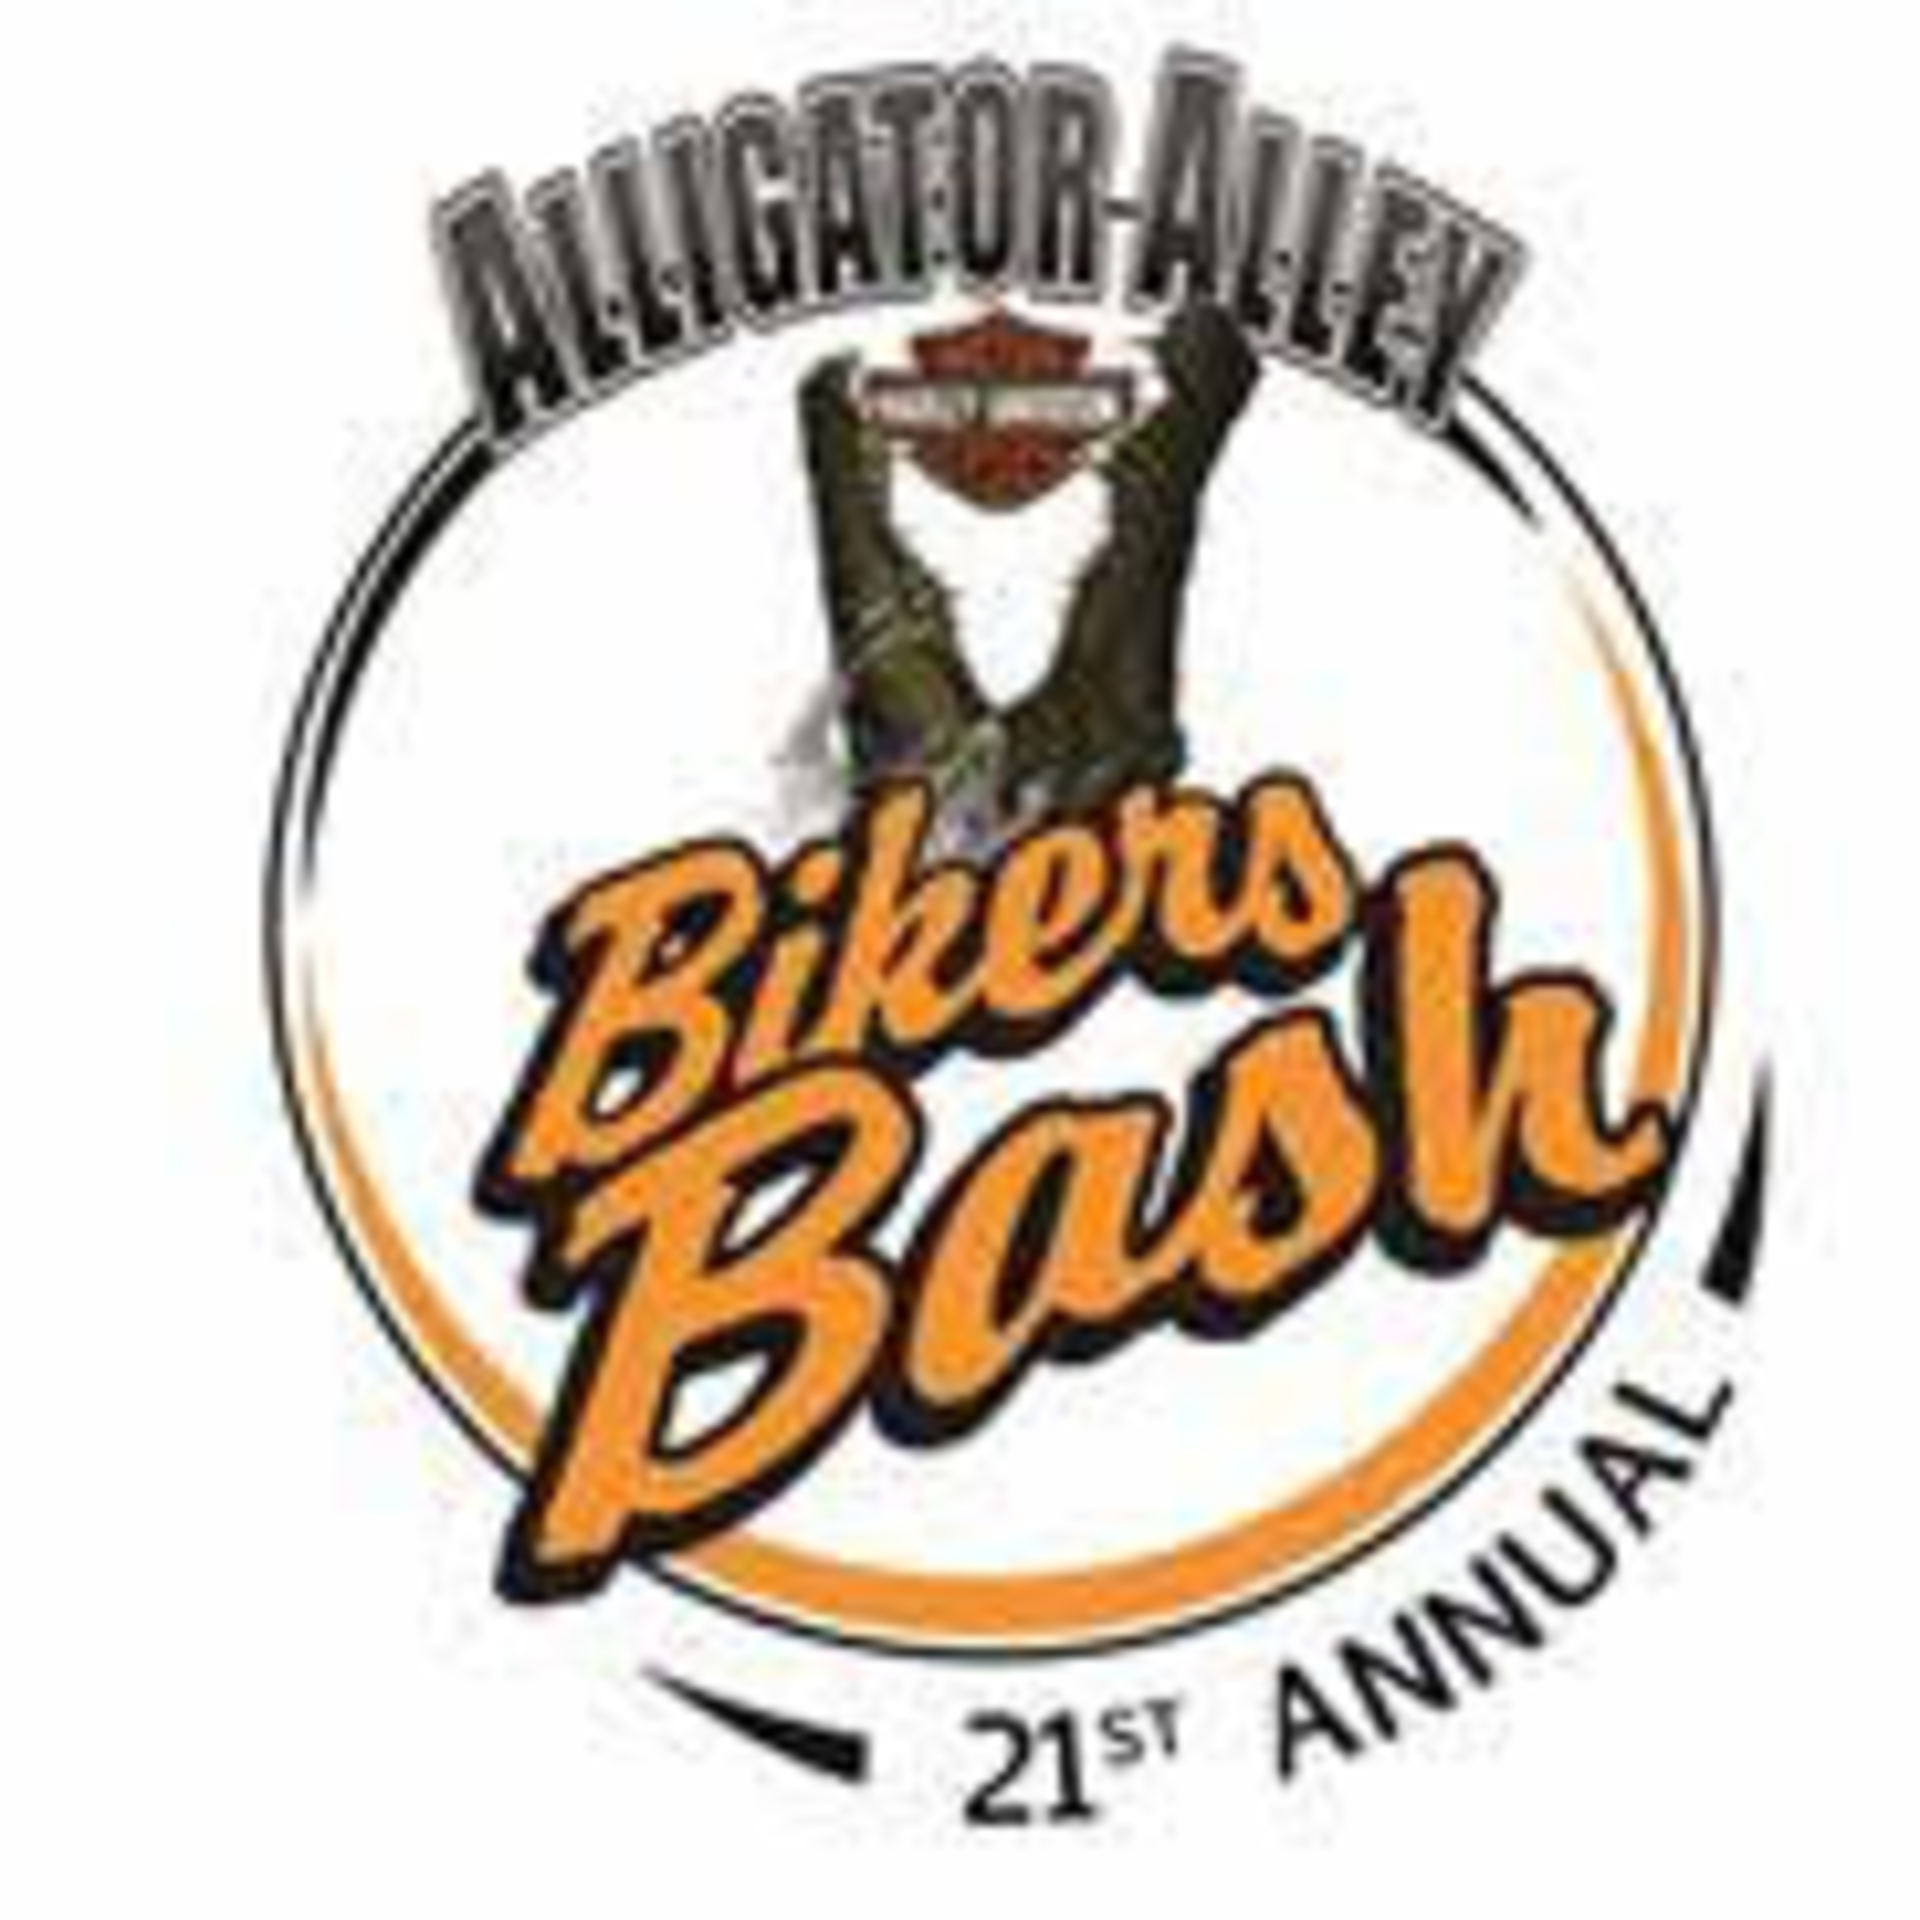 21st Annual Alligator Alley's Harley-Davidson Bikers Bash